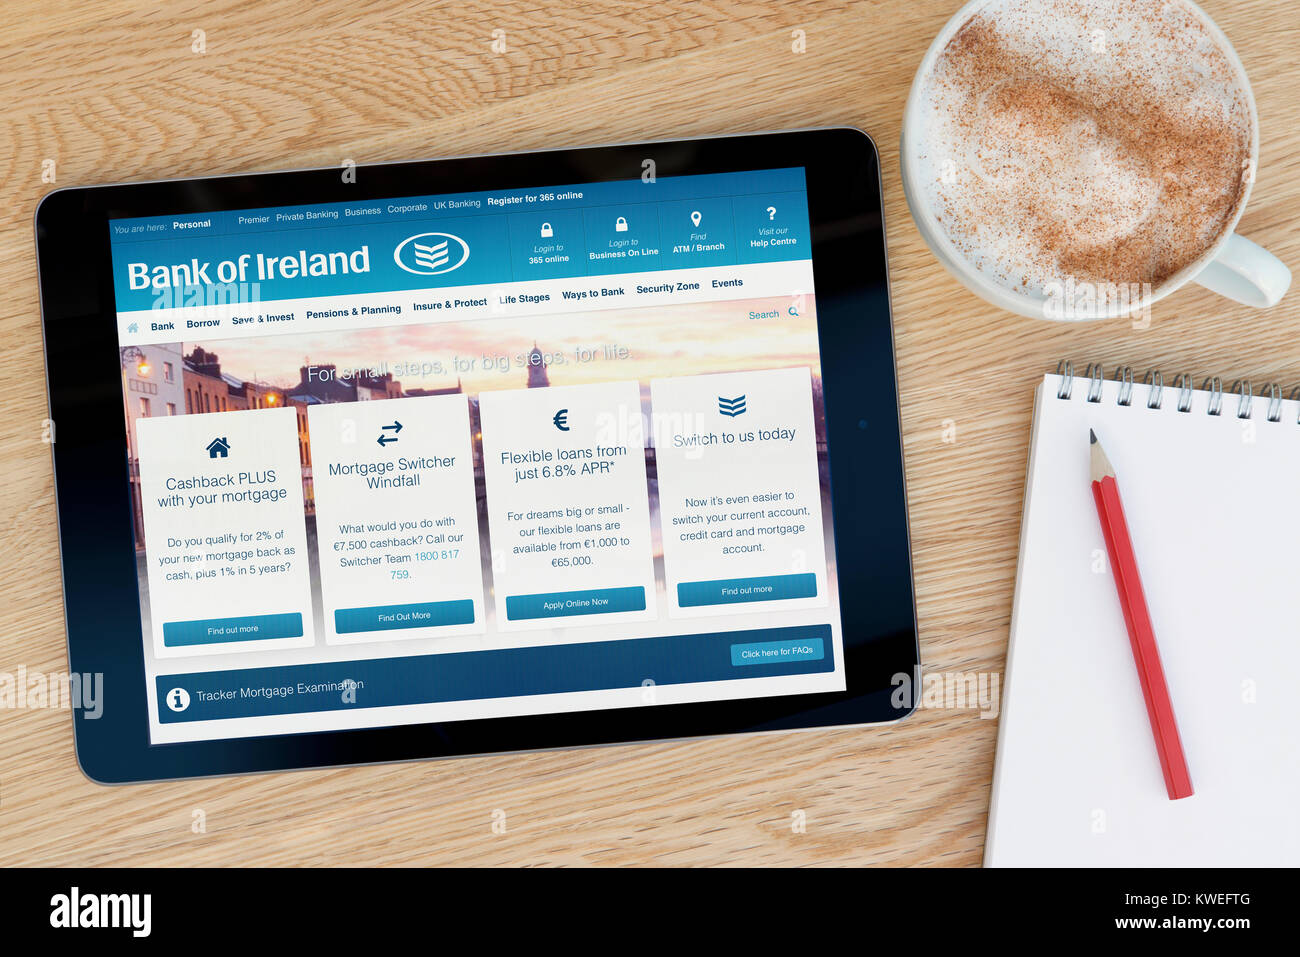 The Bank of Ireland website on an iPad tablet device, resting on a wooden table beside a notepad, pencil and cup - Stock Image